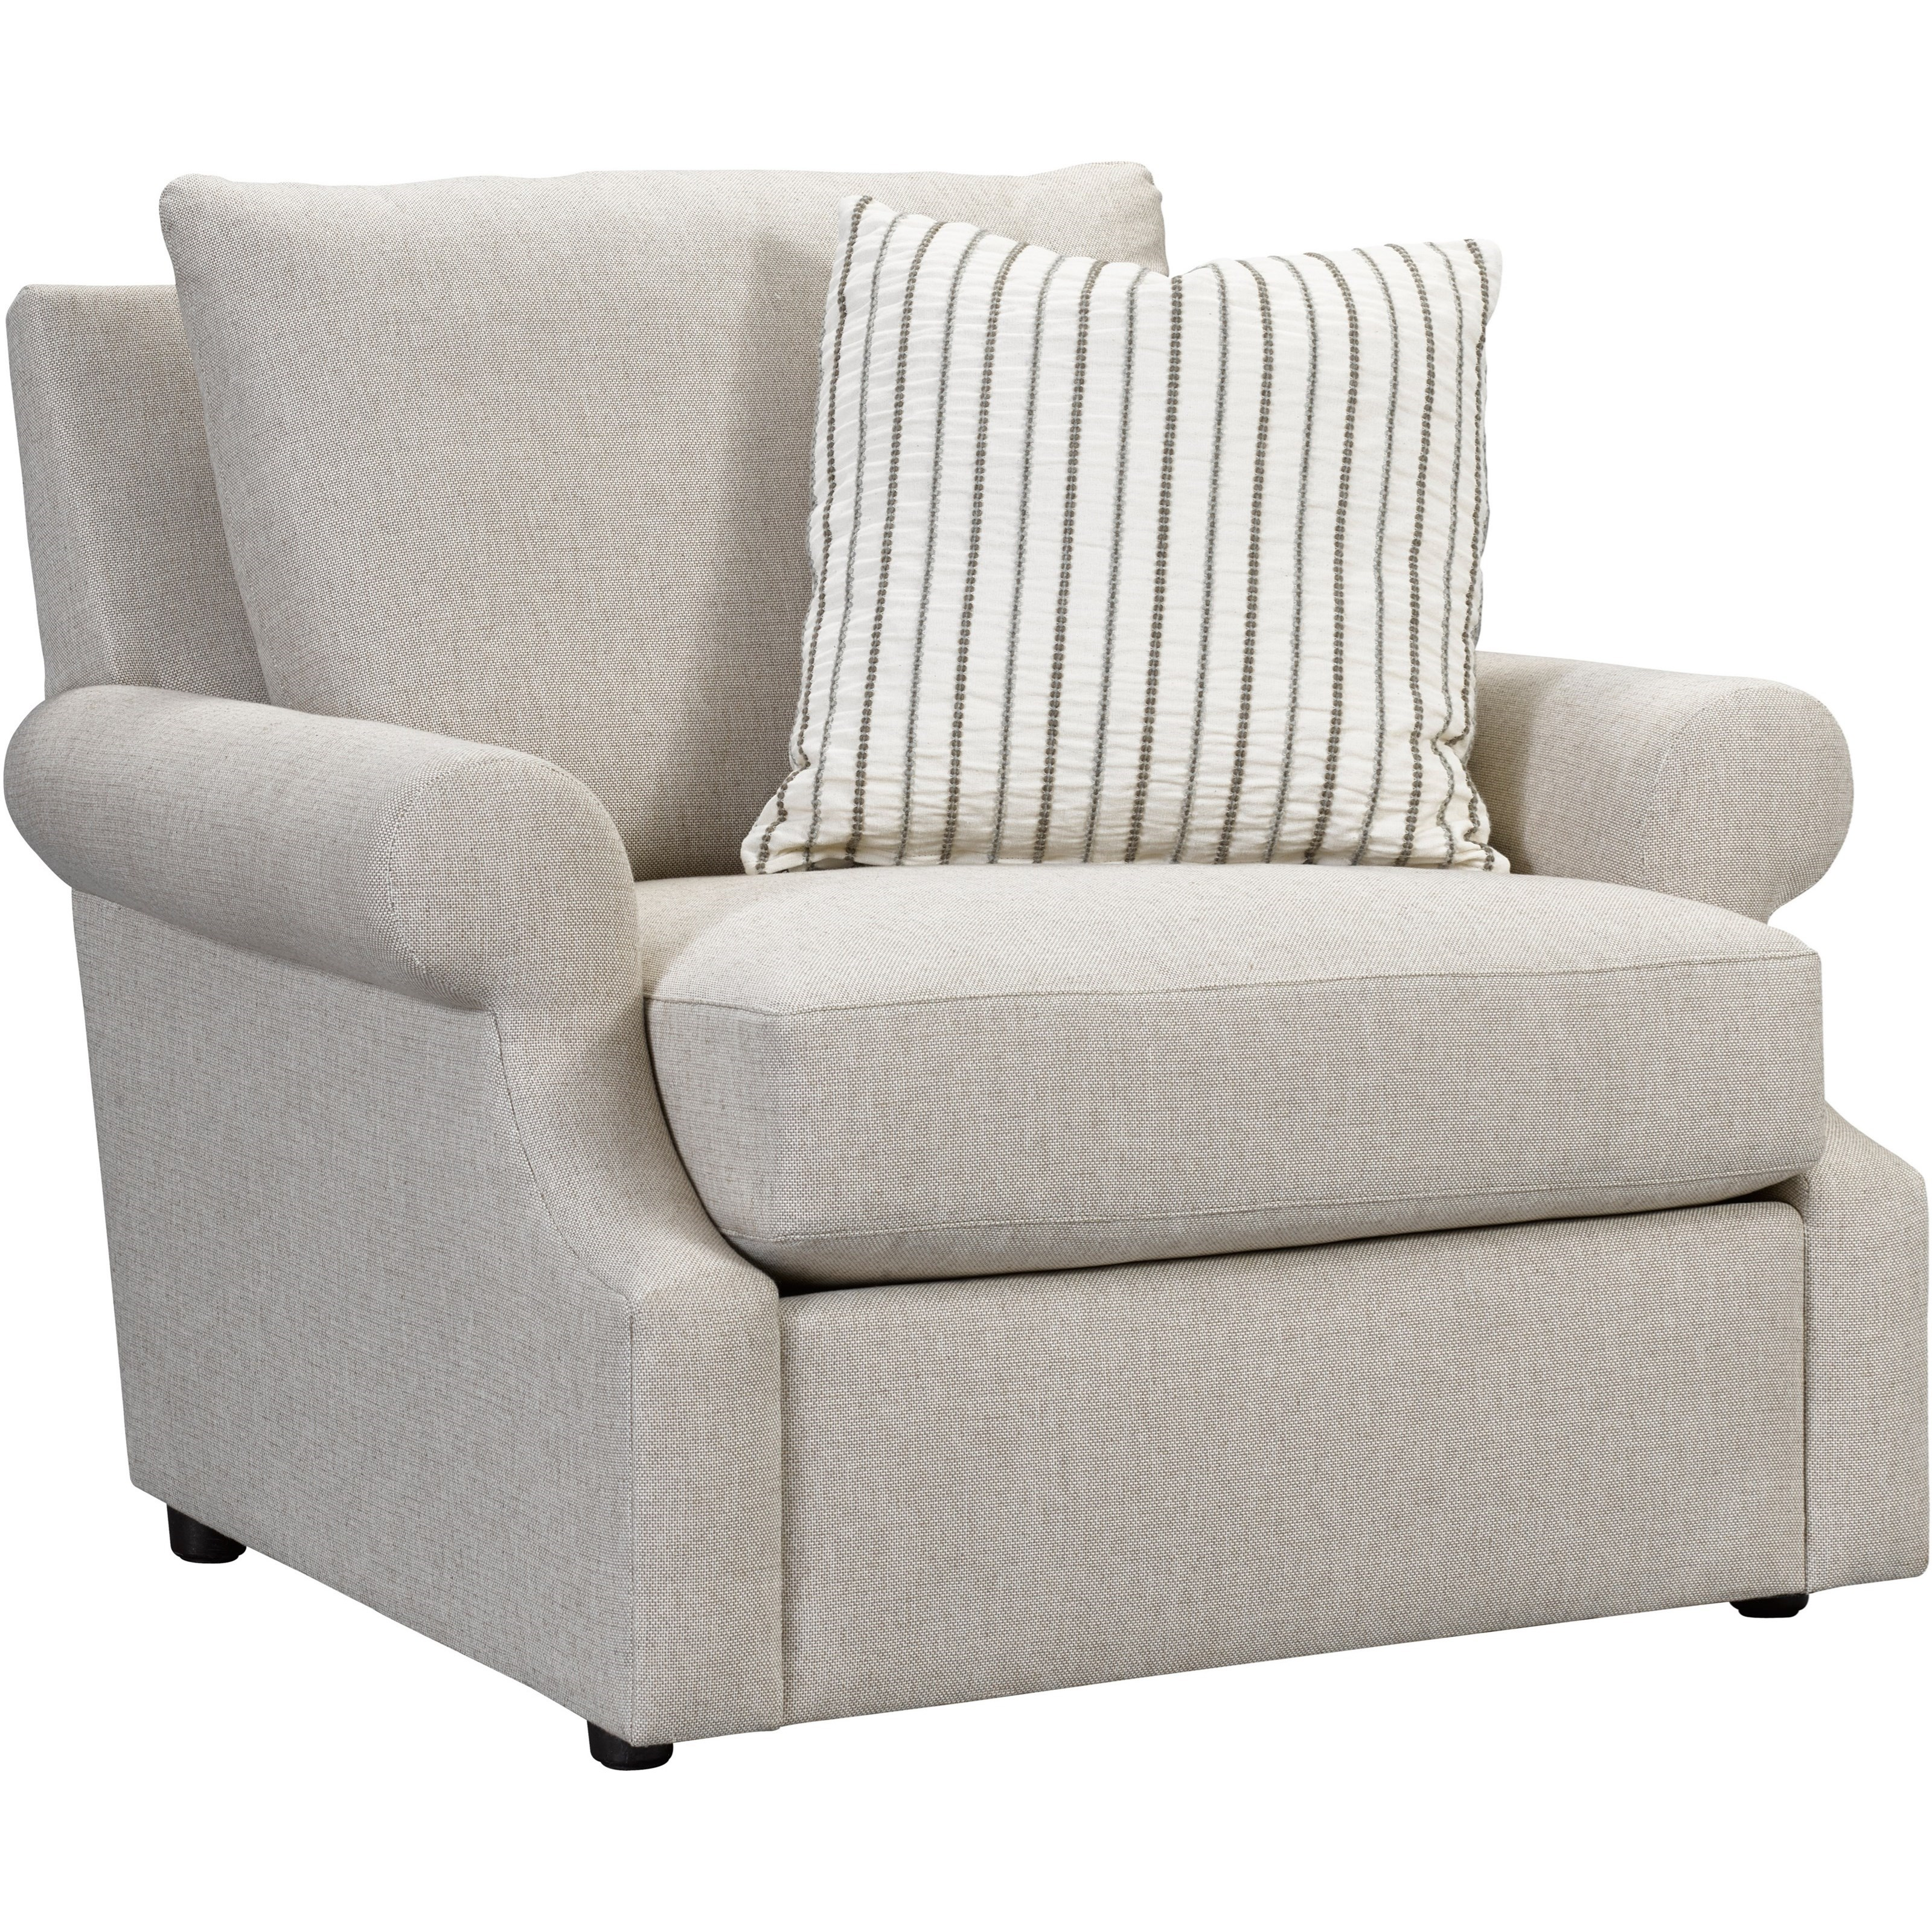 Broyhill Furniture Willa Chair - Item Number: 4216-000-4889-93